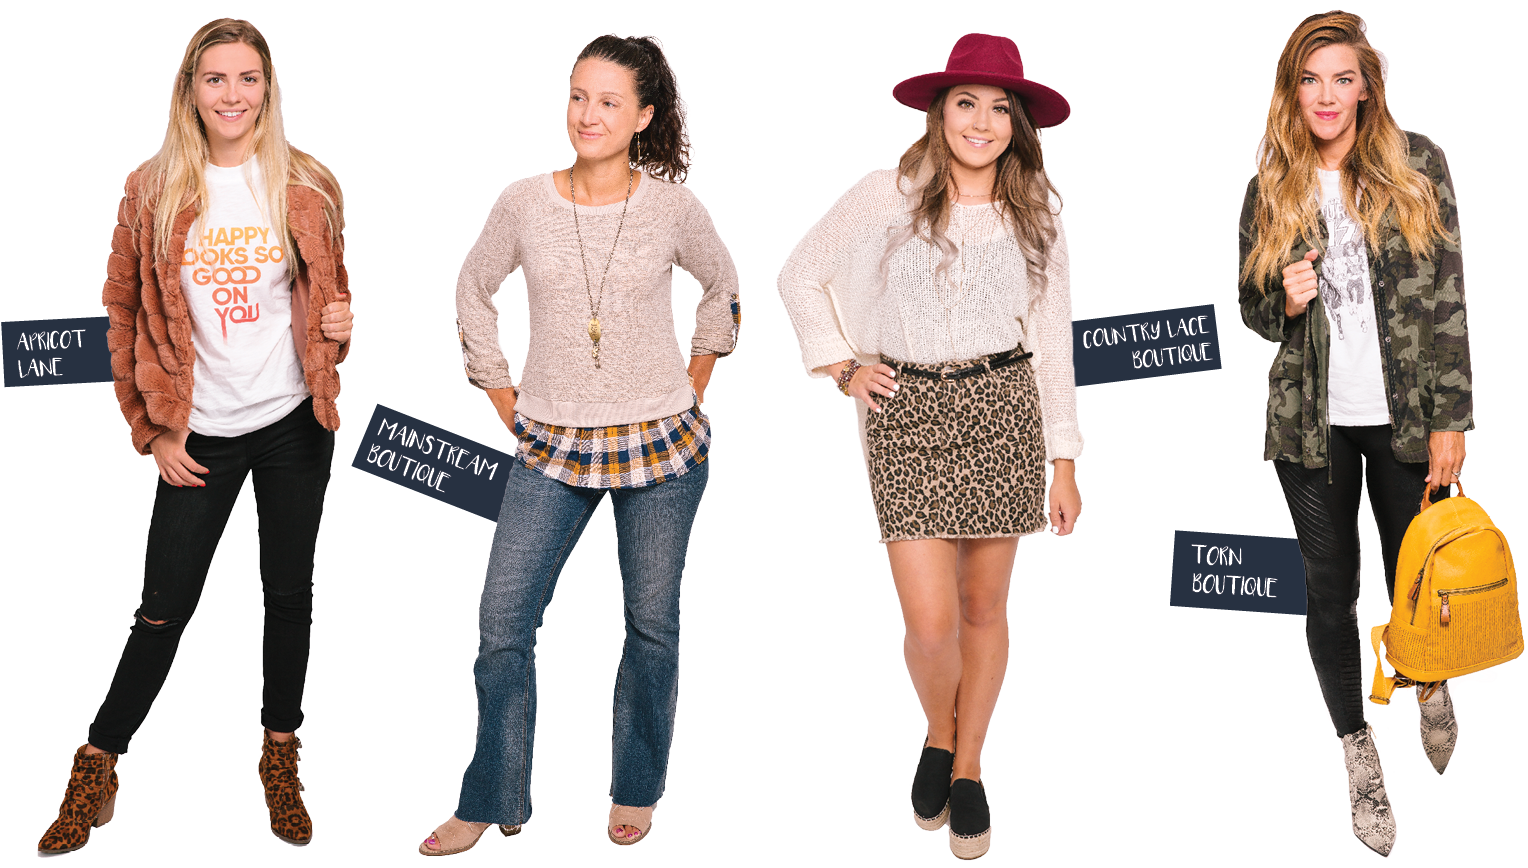 Styles by Apricot Lane, Mainstream Boutique, Country Lace Boutique and Torn Boutique